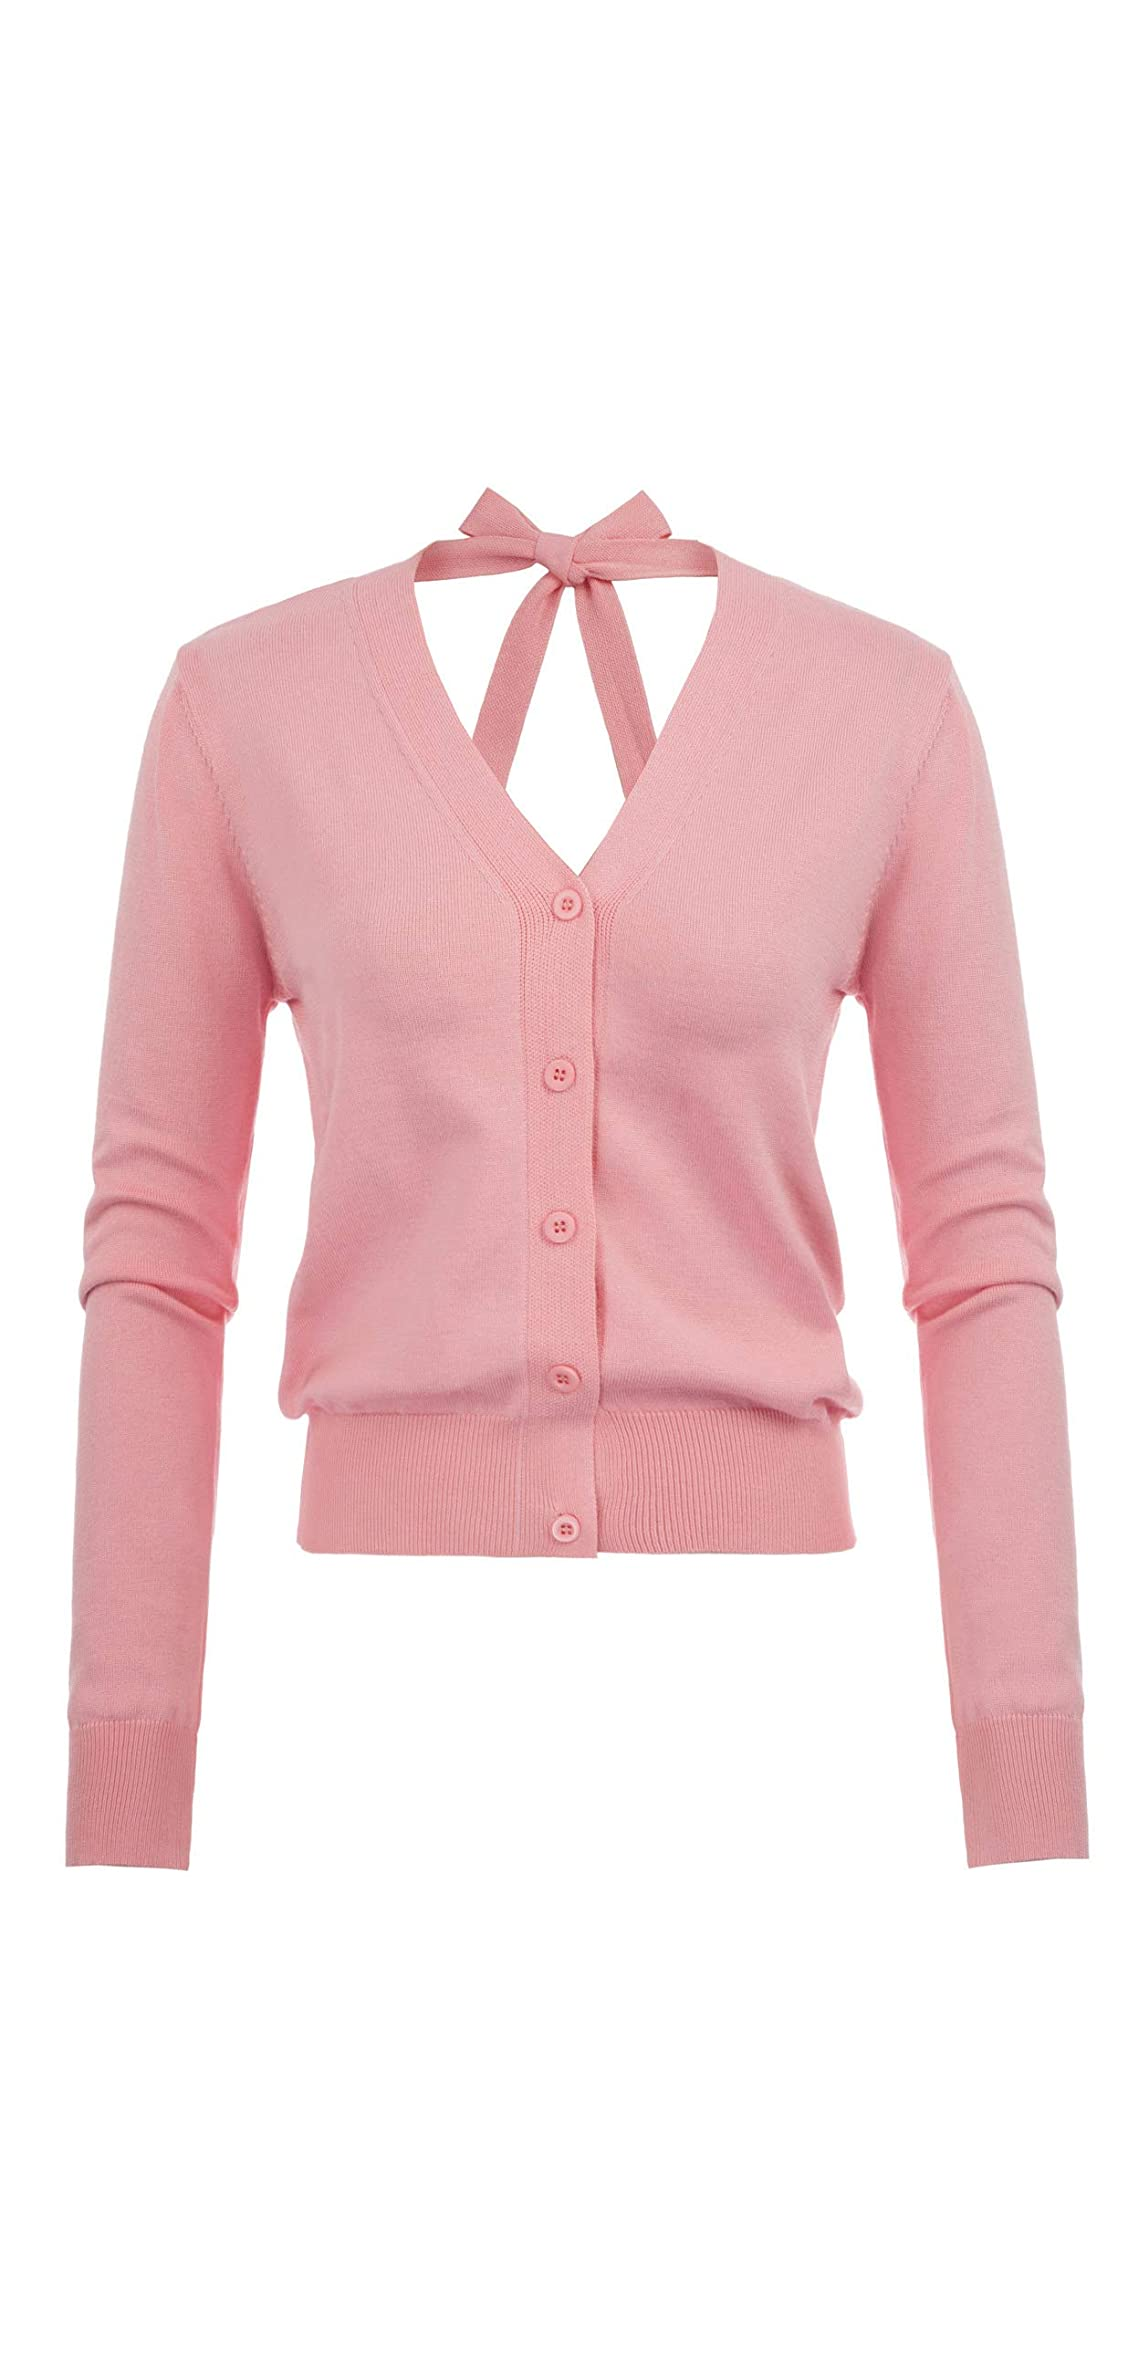 Women's V-neck Back Bow-knot Button Down Open Front